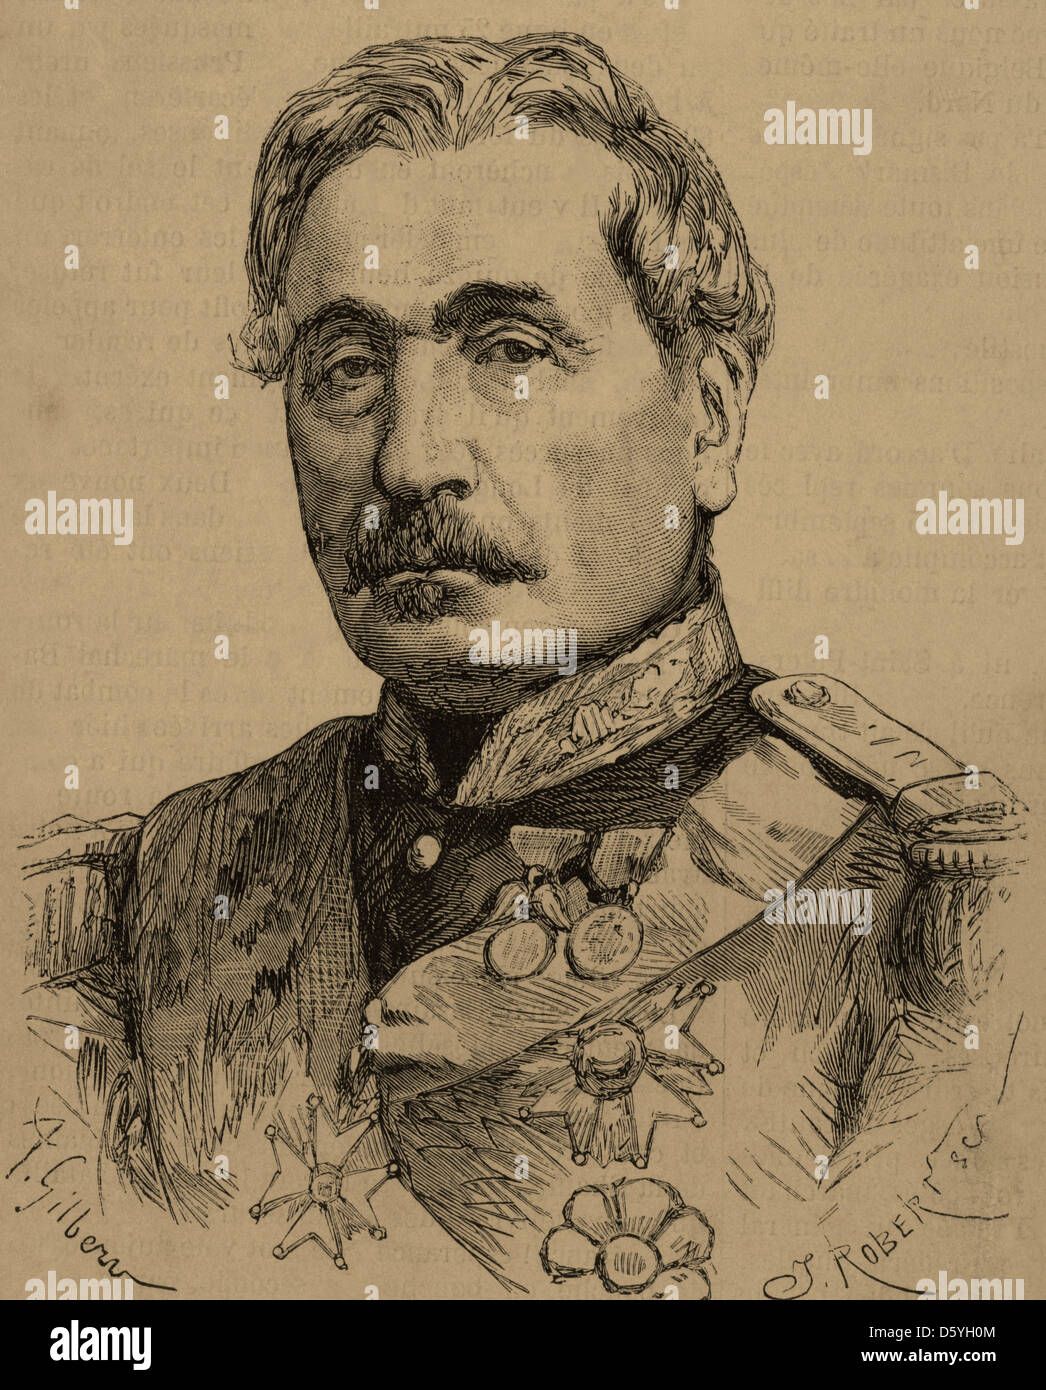 Charles Cousin-Montauban (1796-1878). French general and statesman. Engraving by Robertsen. - Stock Image